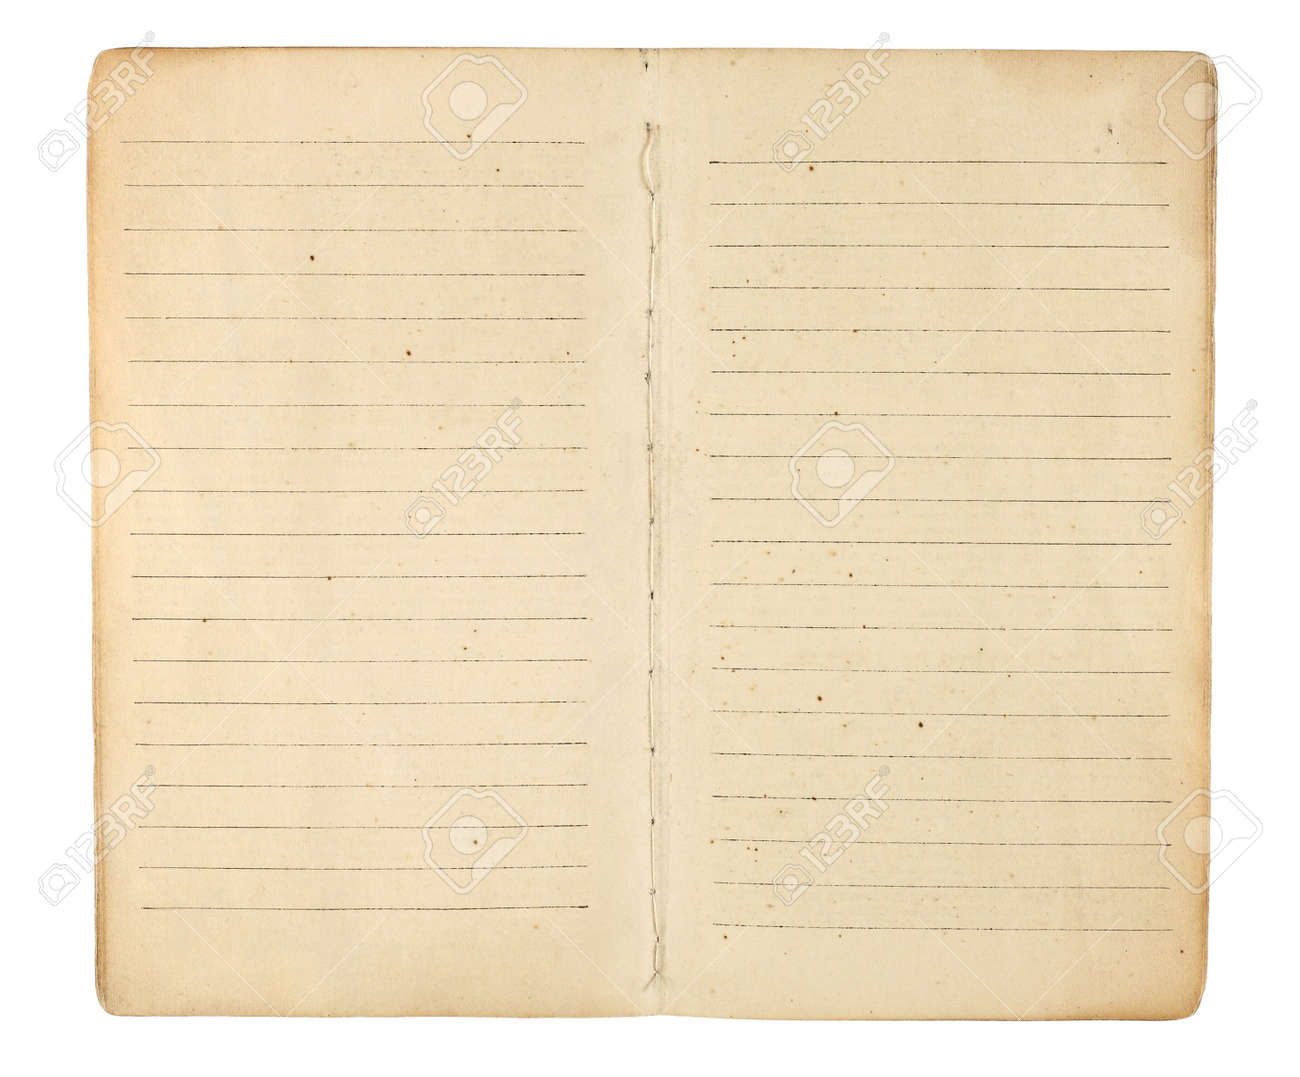 an old memo book or diary opened to reveal yellowing blank an old memo book or diary opened to reveal yellowing blank lined facing pages